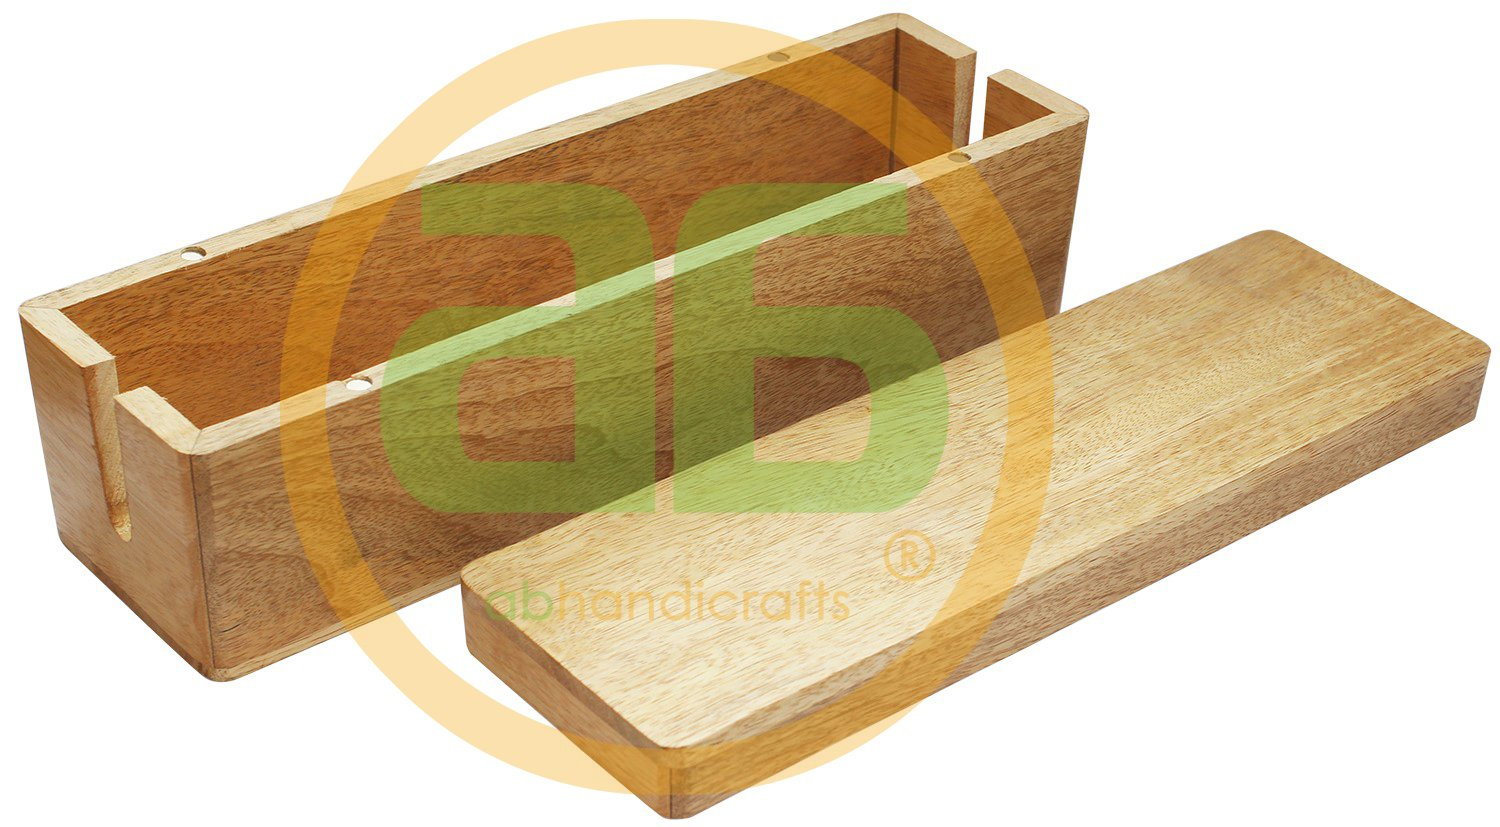 Sale for Today ONLY - AB Handicrafts - 12.7x3.6 inches Wooden Magnetic Brown Cable Box - Cable Management Box Organizer USB Hub Hides All Wires